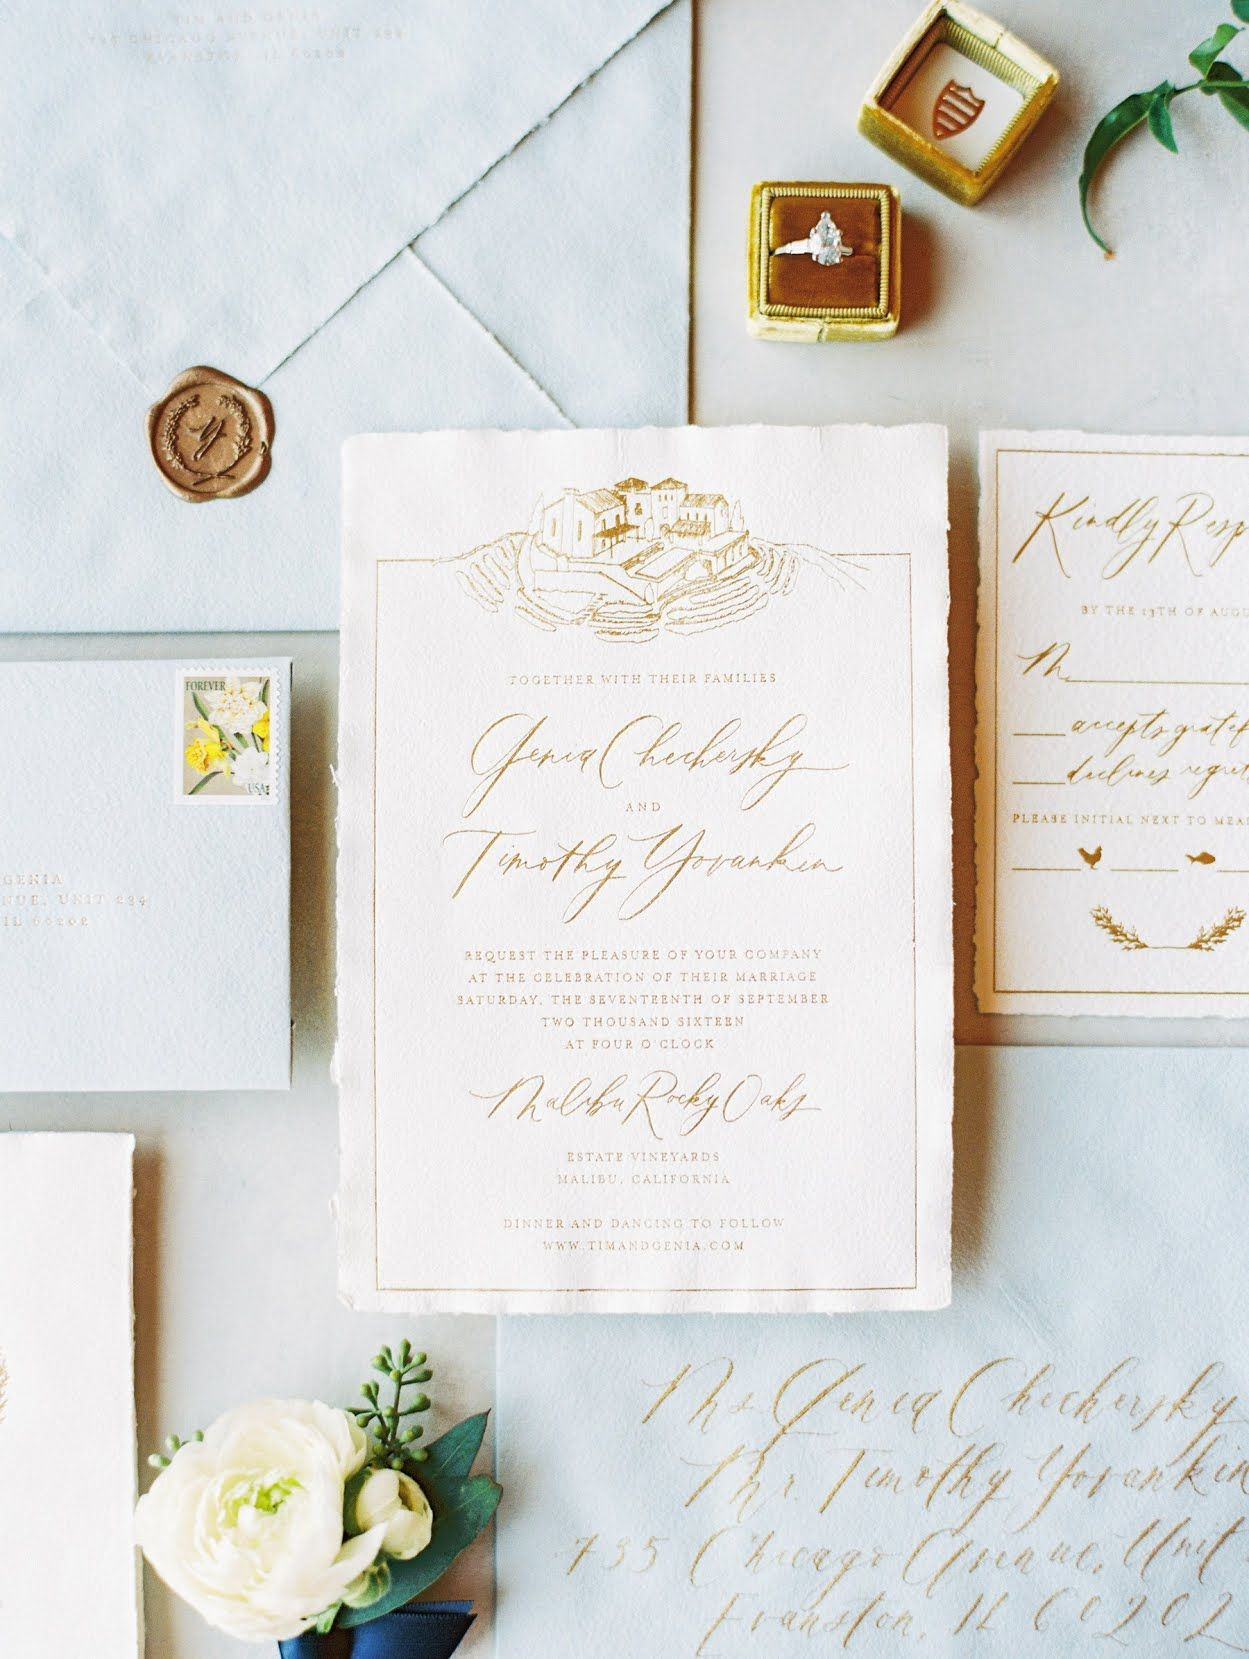 This Is A Major Faux Pas That Won T Be Changing Any Time Soon Your Wedding Invitations Are Way To Let Guests Know You Love Them And Want